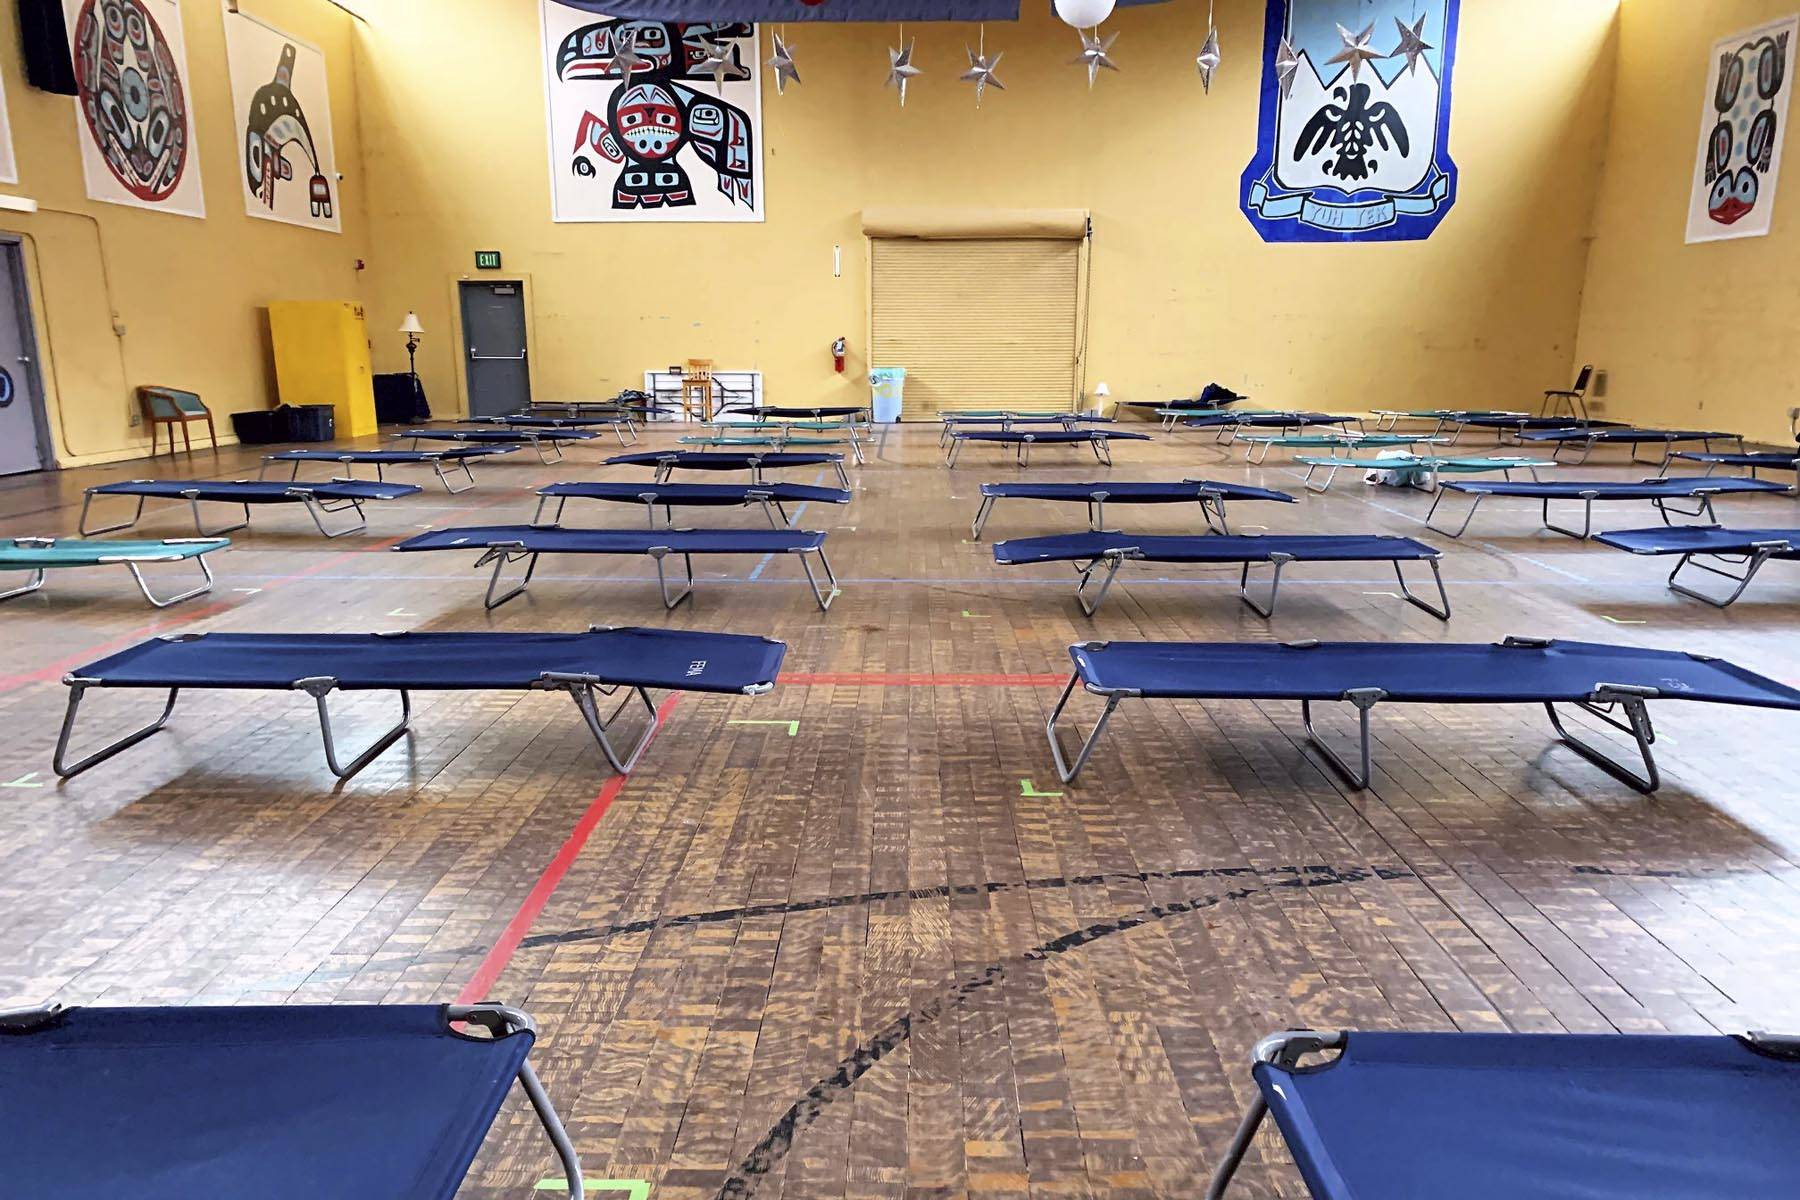 The Juneau Arts and Culture Center is being used as a shelter for Juneau residents experiencing homelessness in the face of the coronavirus. (Courtesy photo | City and Borough of Juneau)